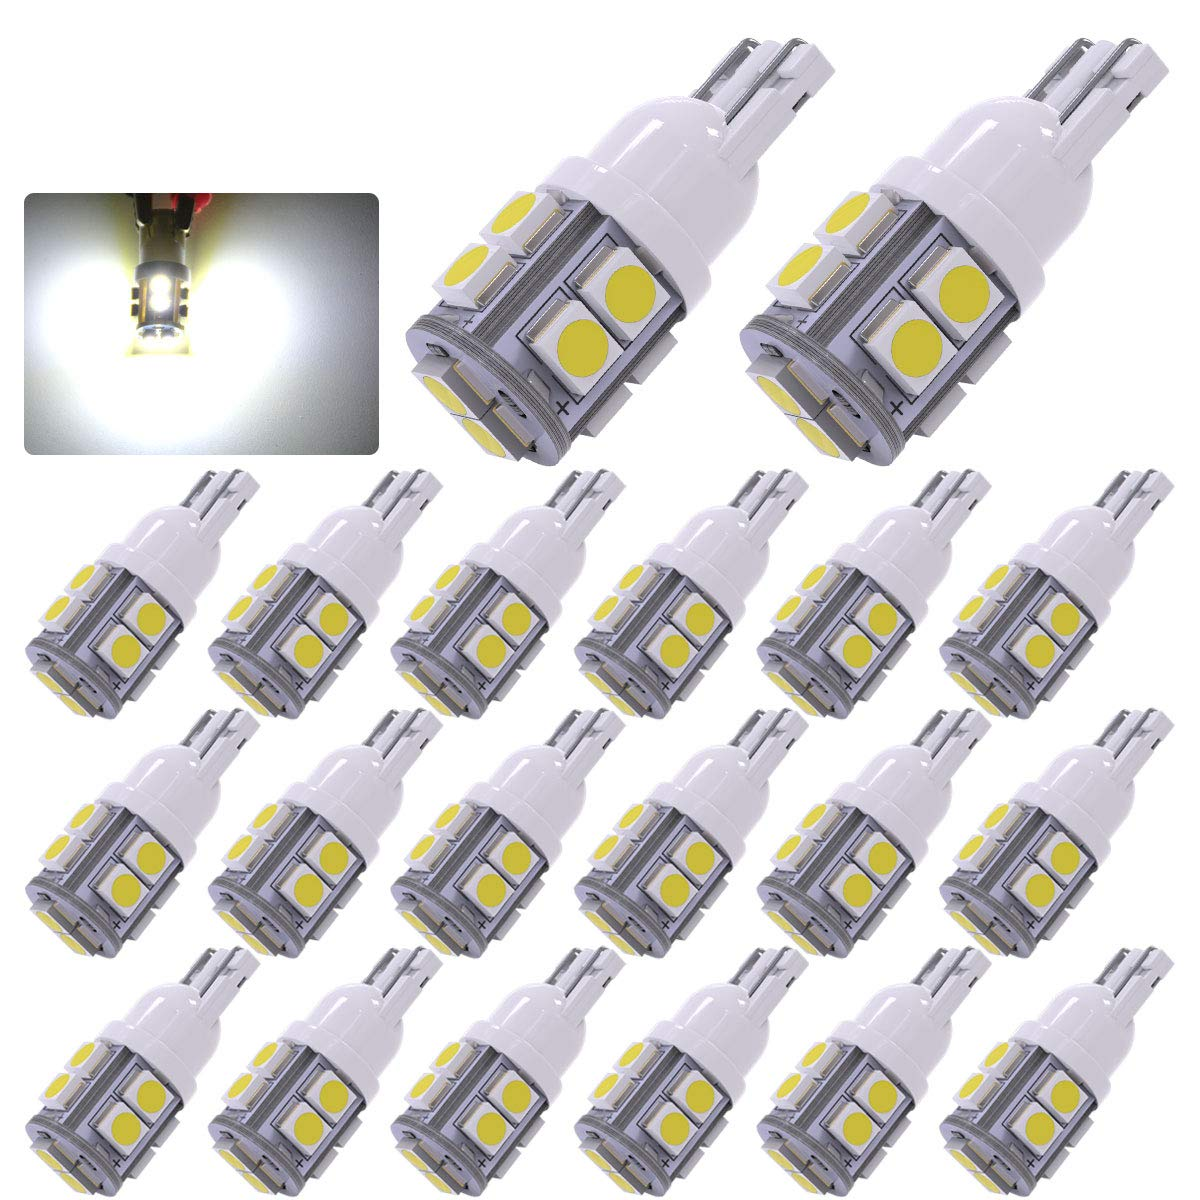 YITAMOTOR 20 x White T10 Wedge 10-SMD LED Light Bulbs W5W 2825 158 192 168 194,12V Car Interior Lighting Map Dome Lamp Trunk Dashboard Parking Lights 20x_10smd